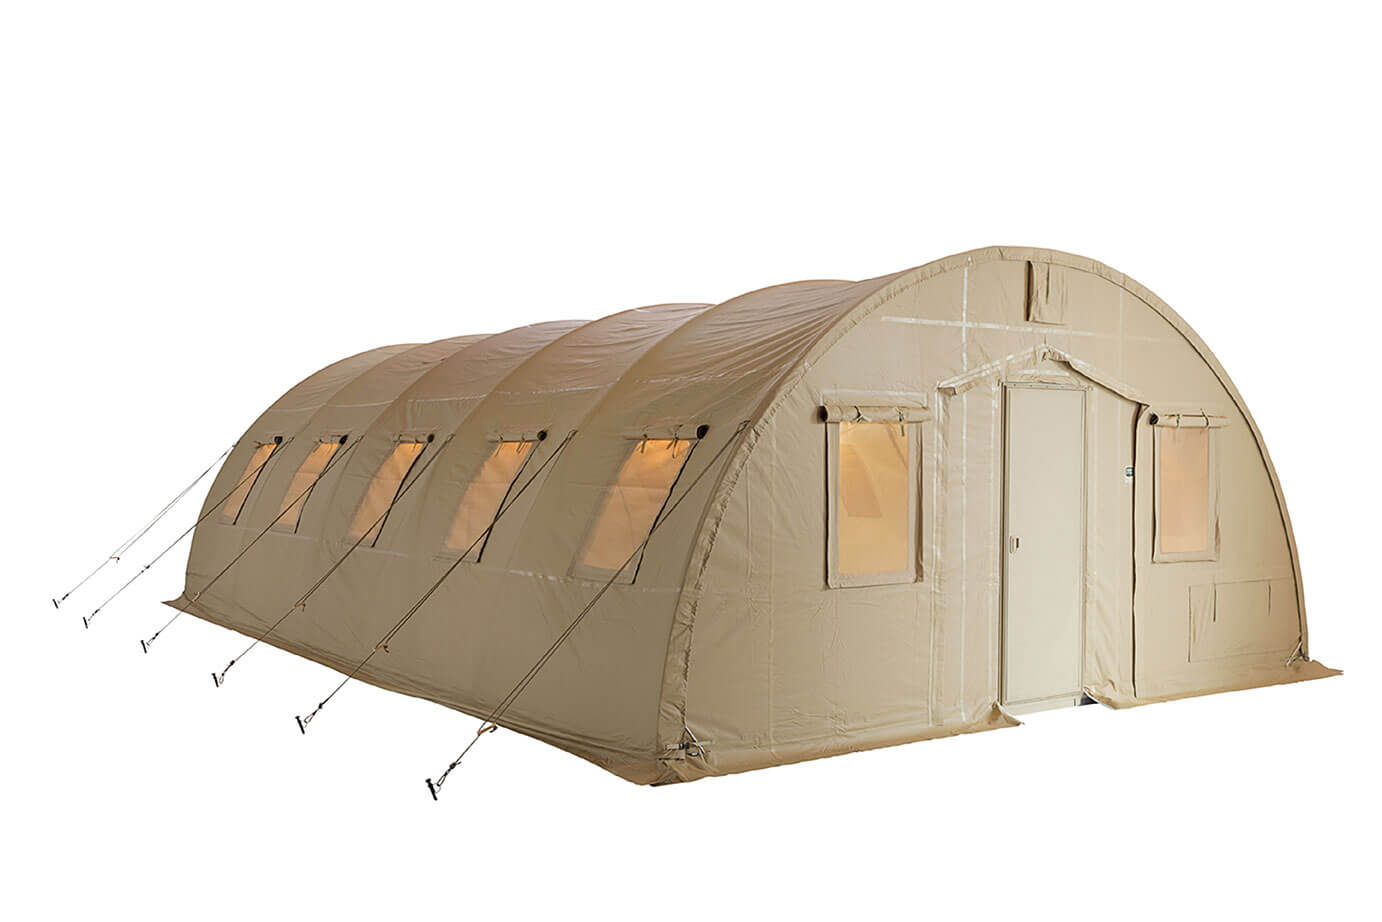 Camss 20q Small Shelter System Sss Camss Shelters